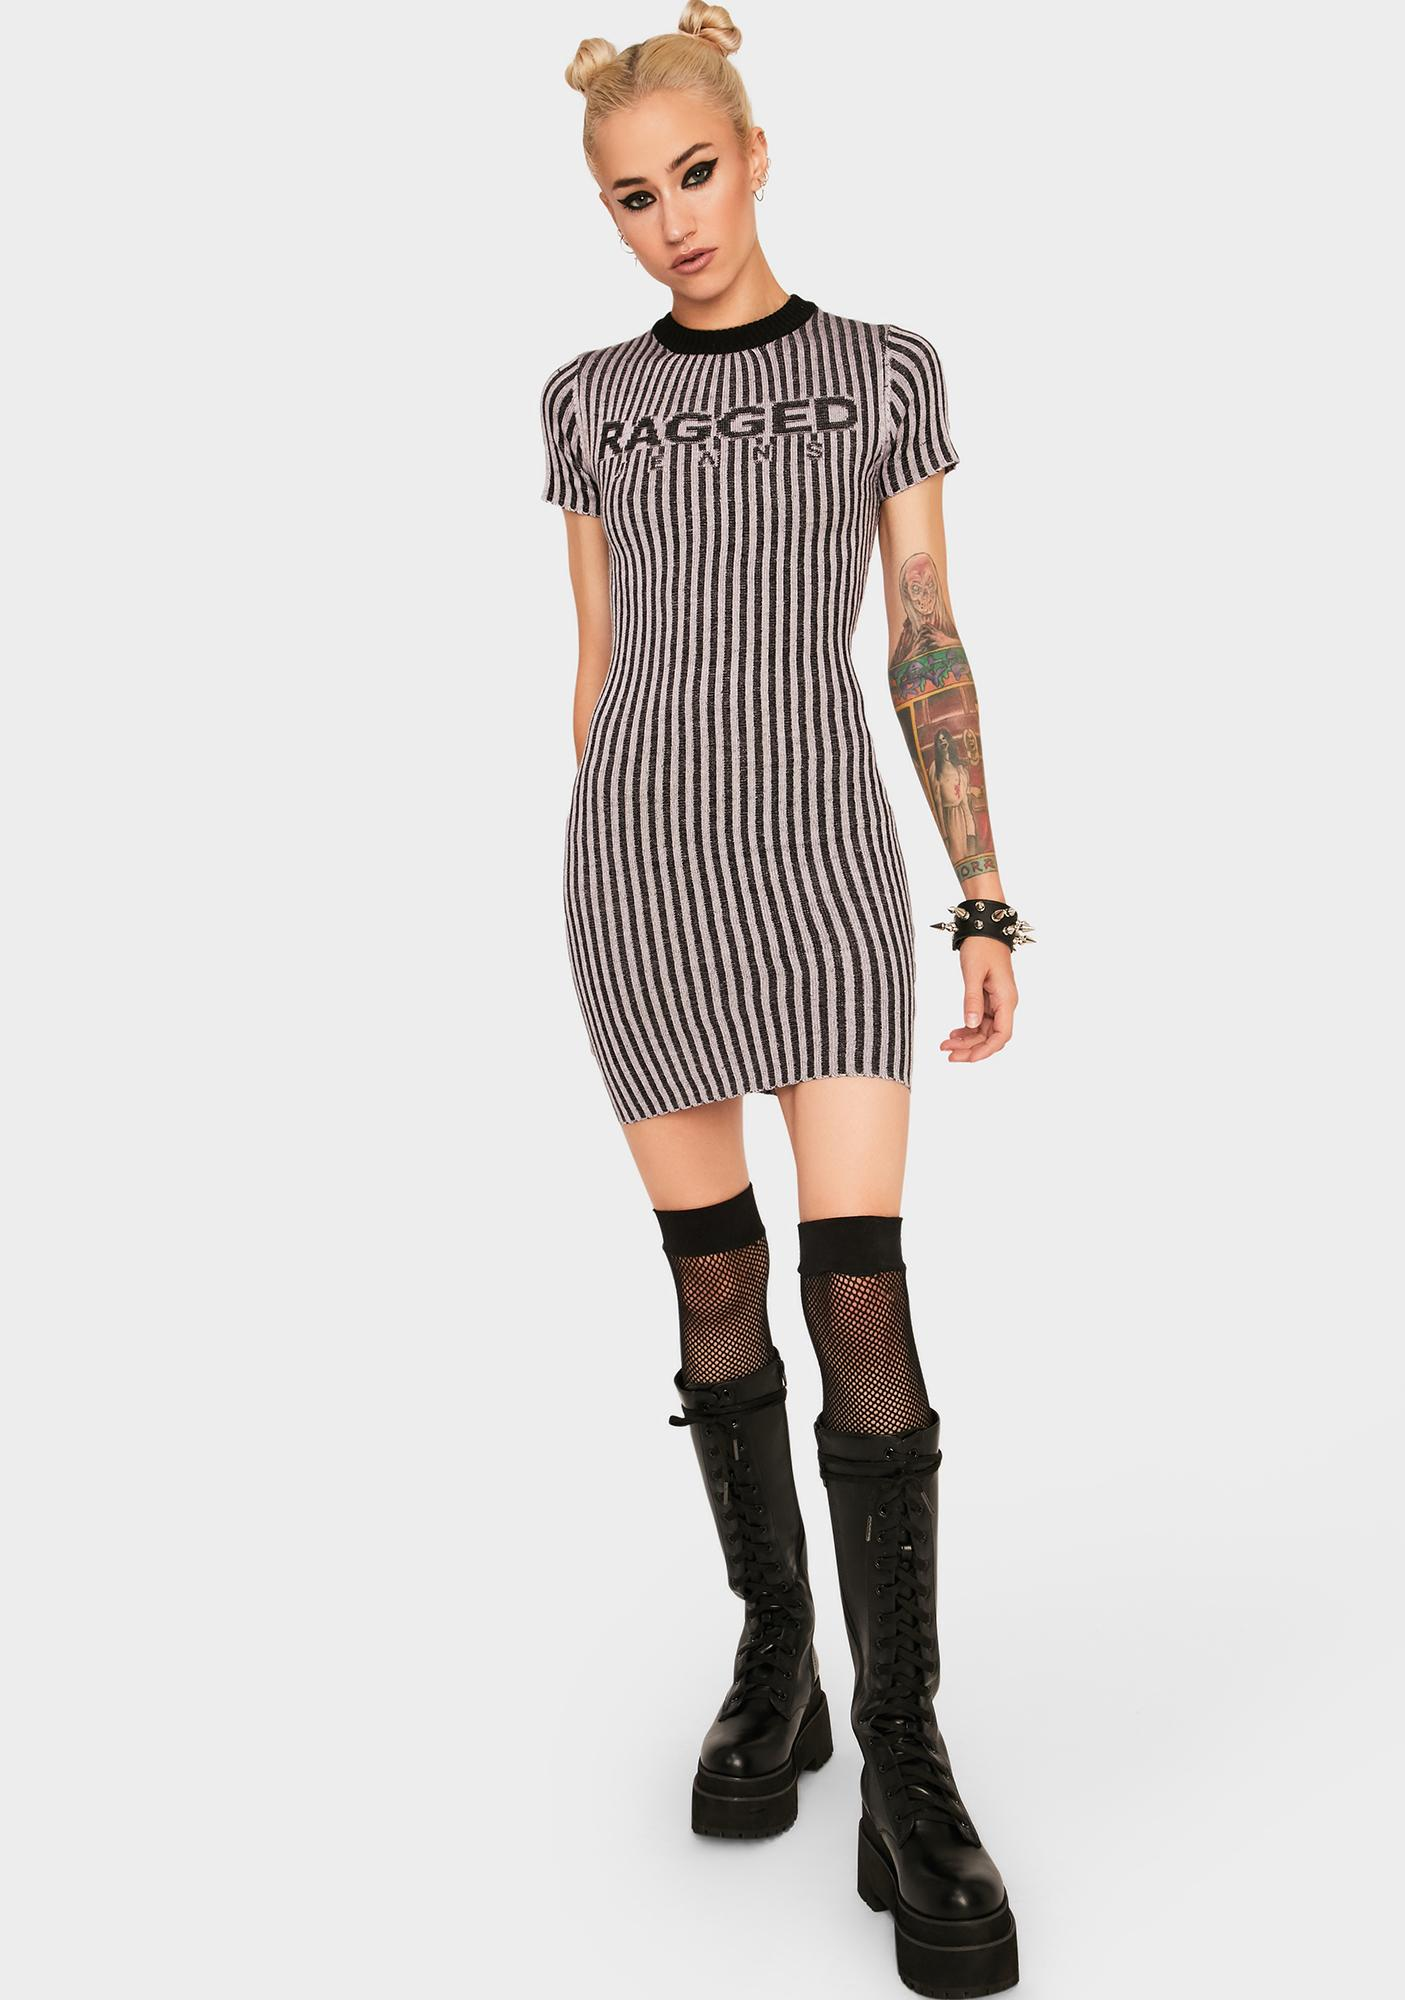 The Ragged Priest Switch Ringer Dress